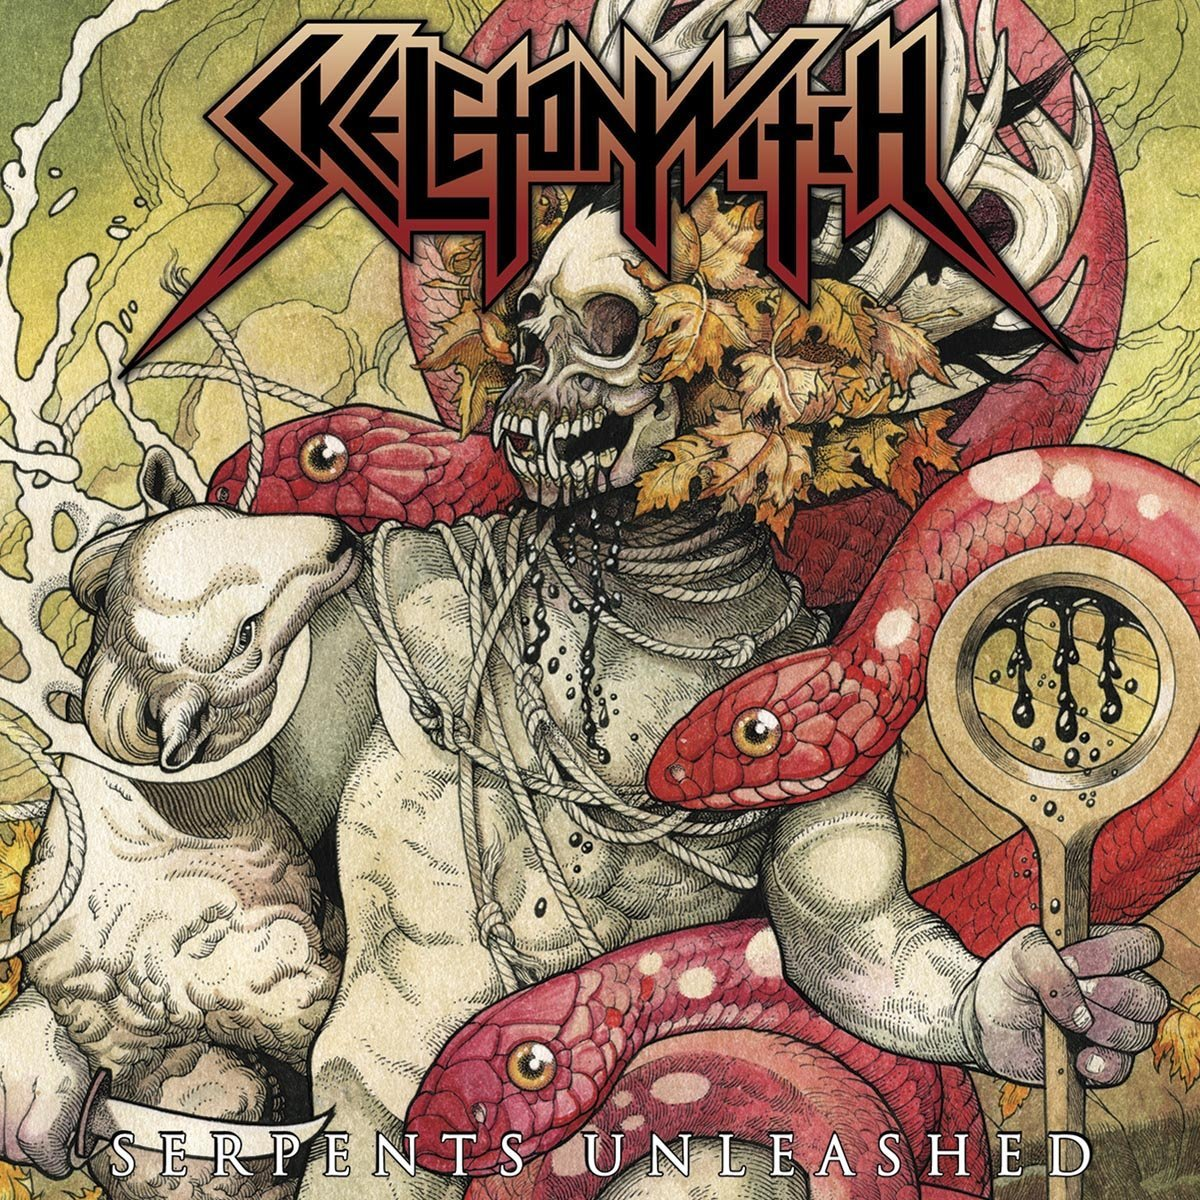 Skeletonwitch - Serpents Unleashed [Import]